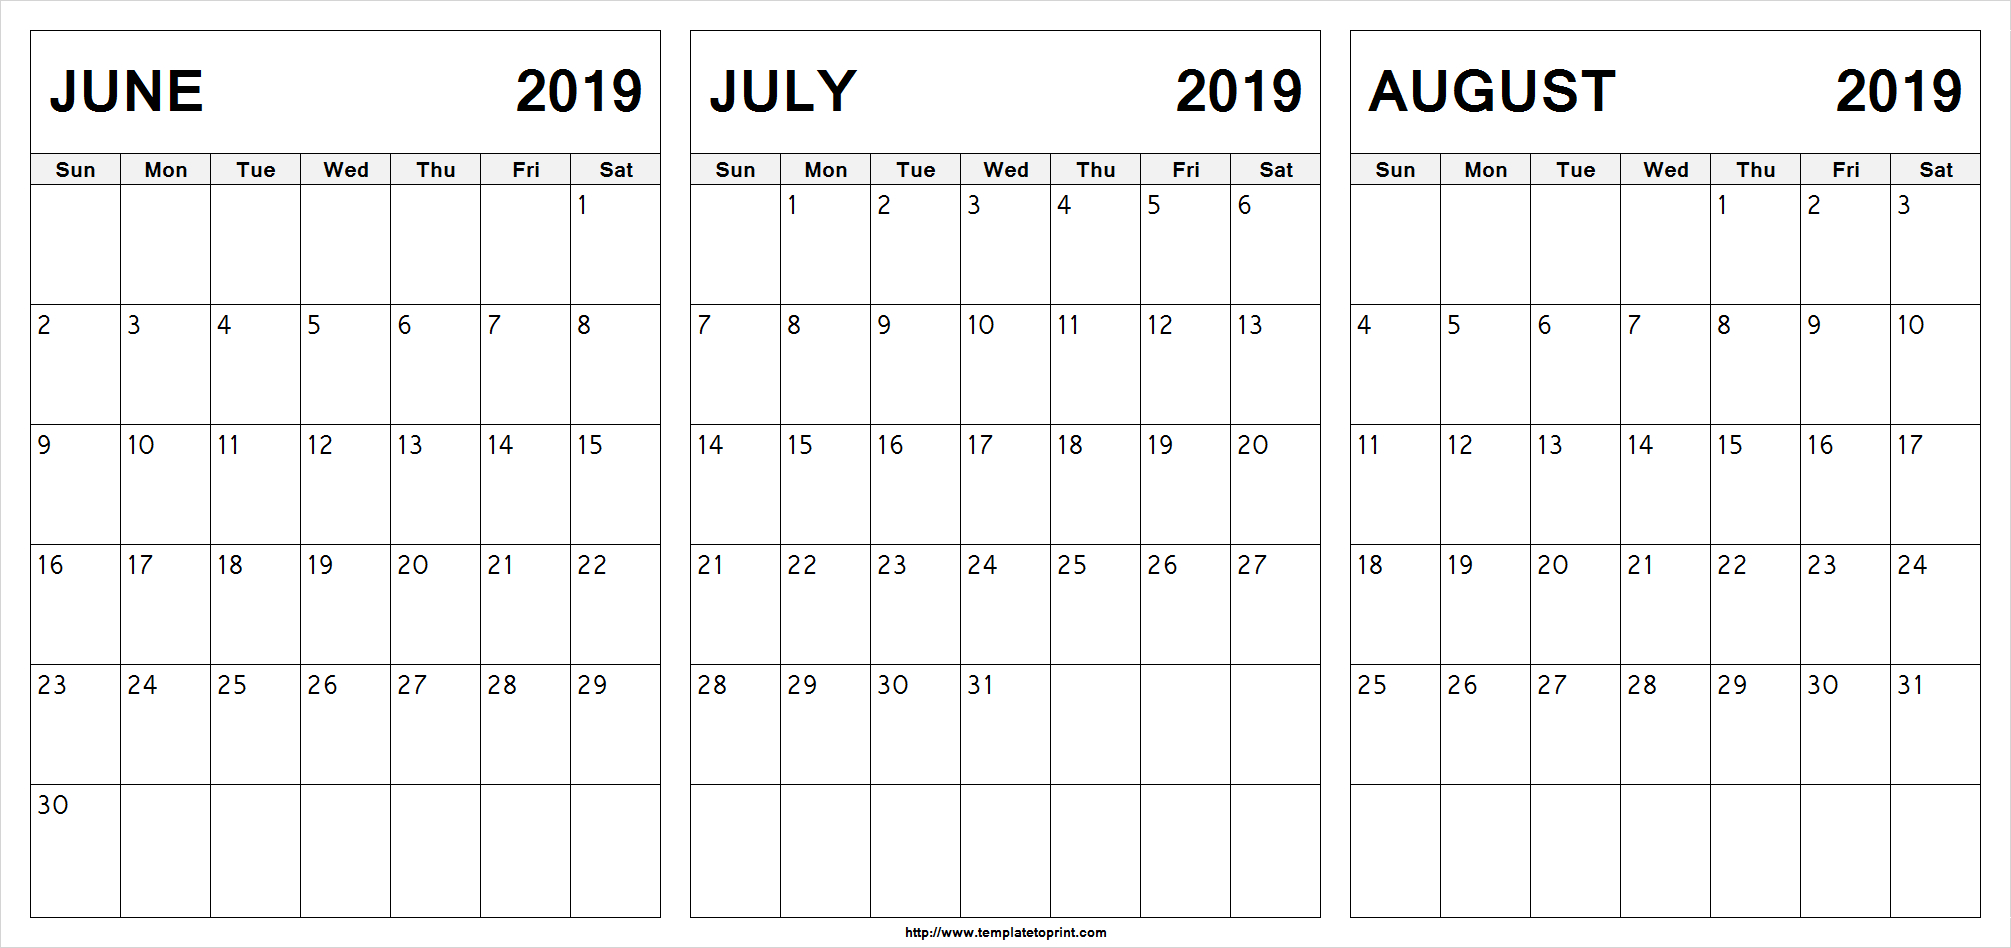 Free June July August 2019 Calendar (3 Months) Printable Template regarding Blank June July August Calendar